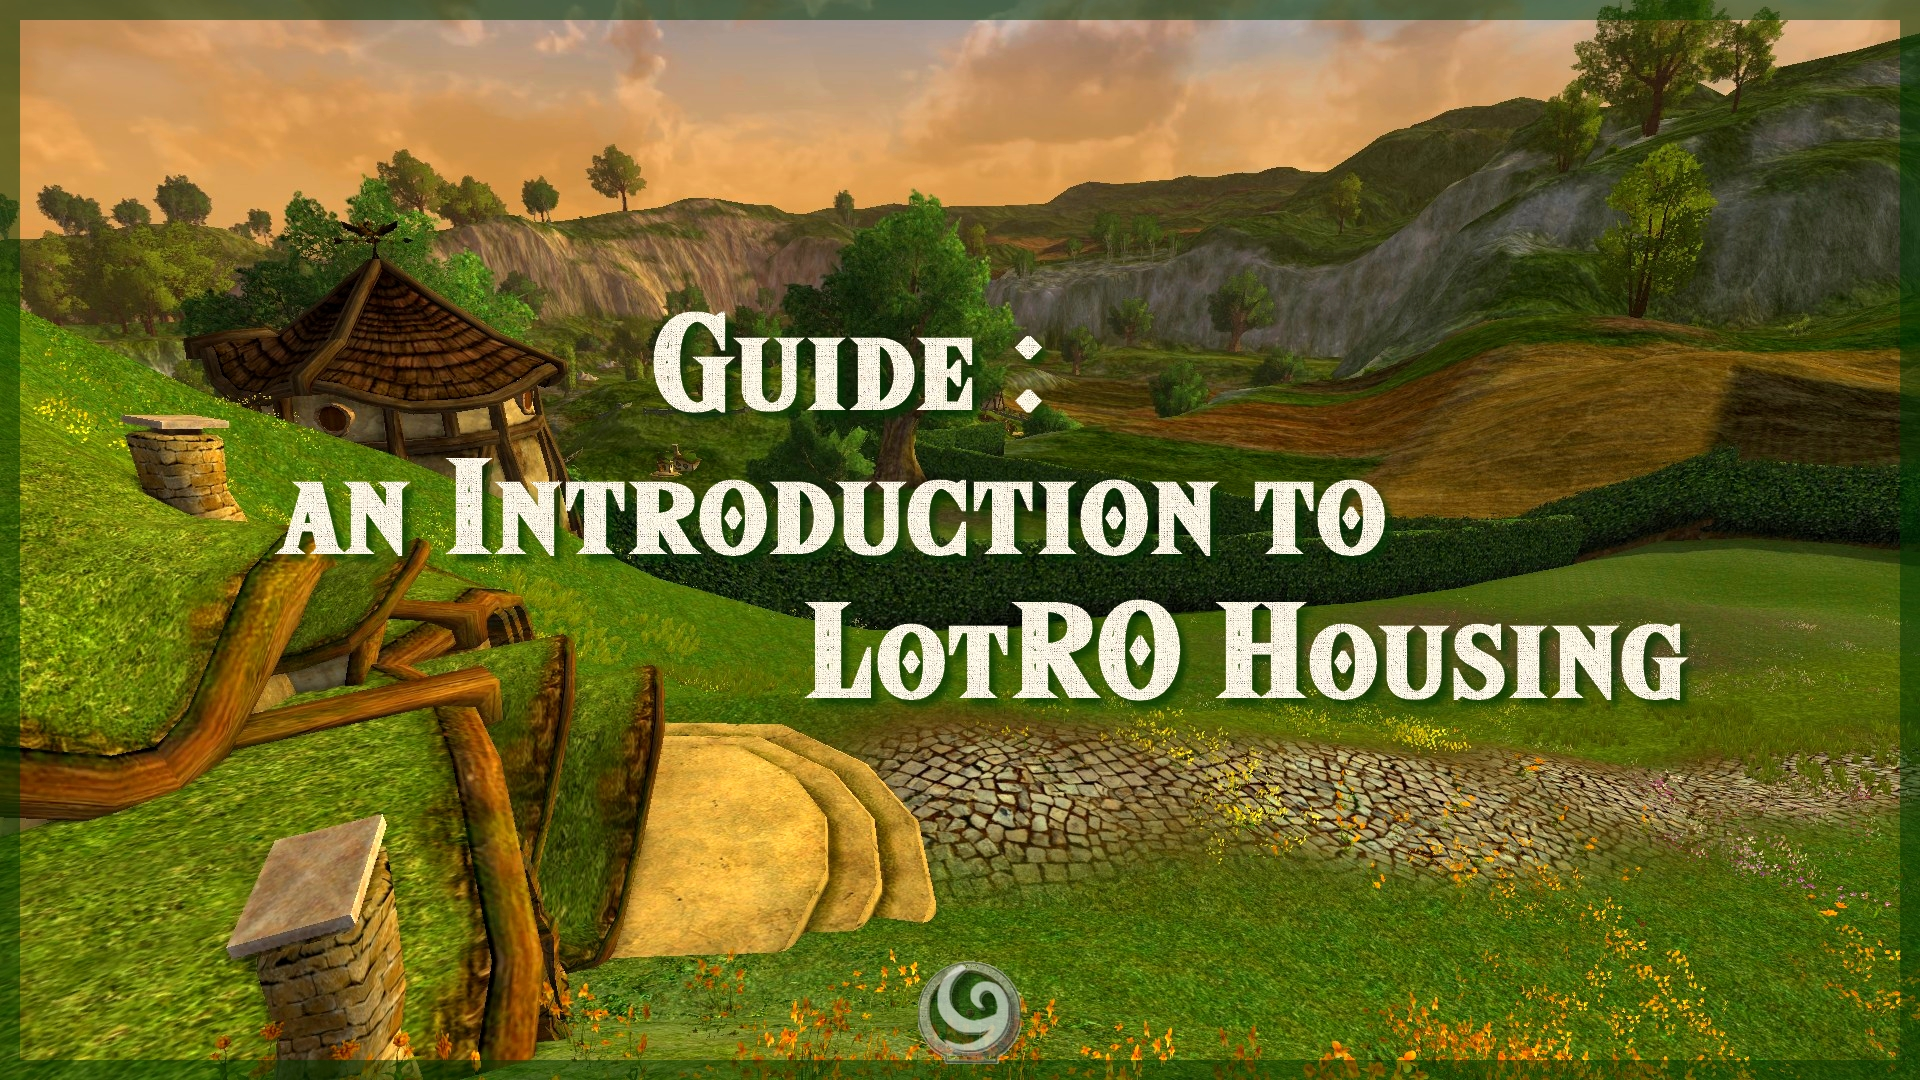 Guide : An Introduction to LotRO Housing - LotRO Housing by